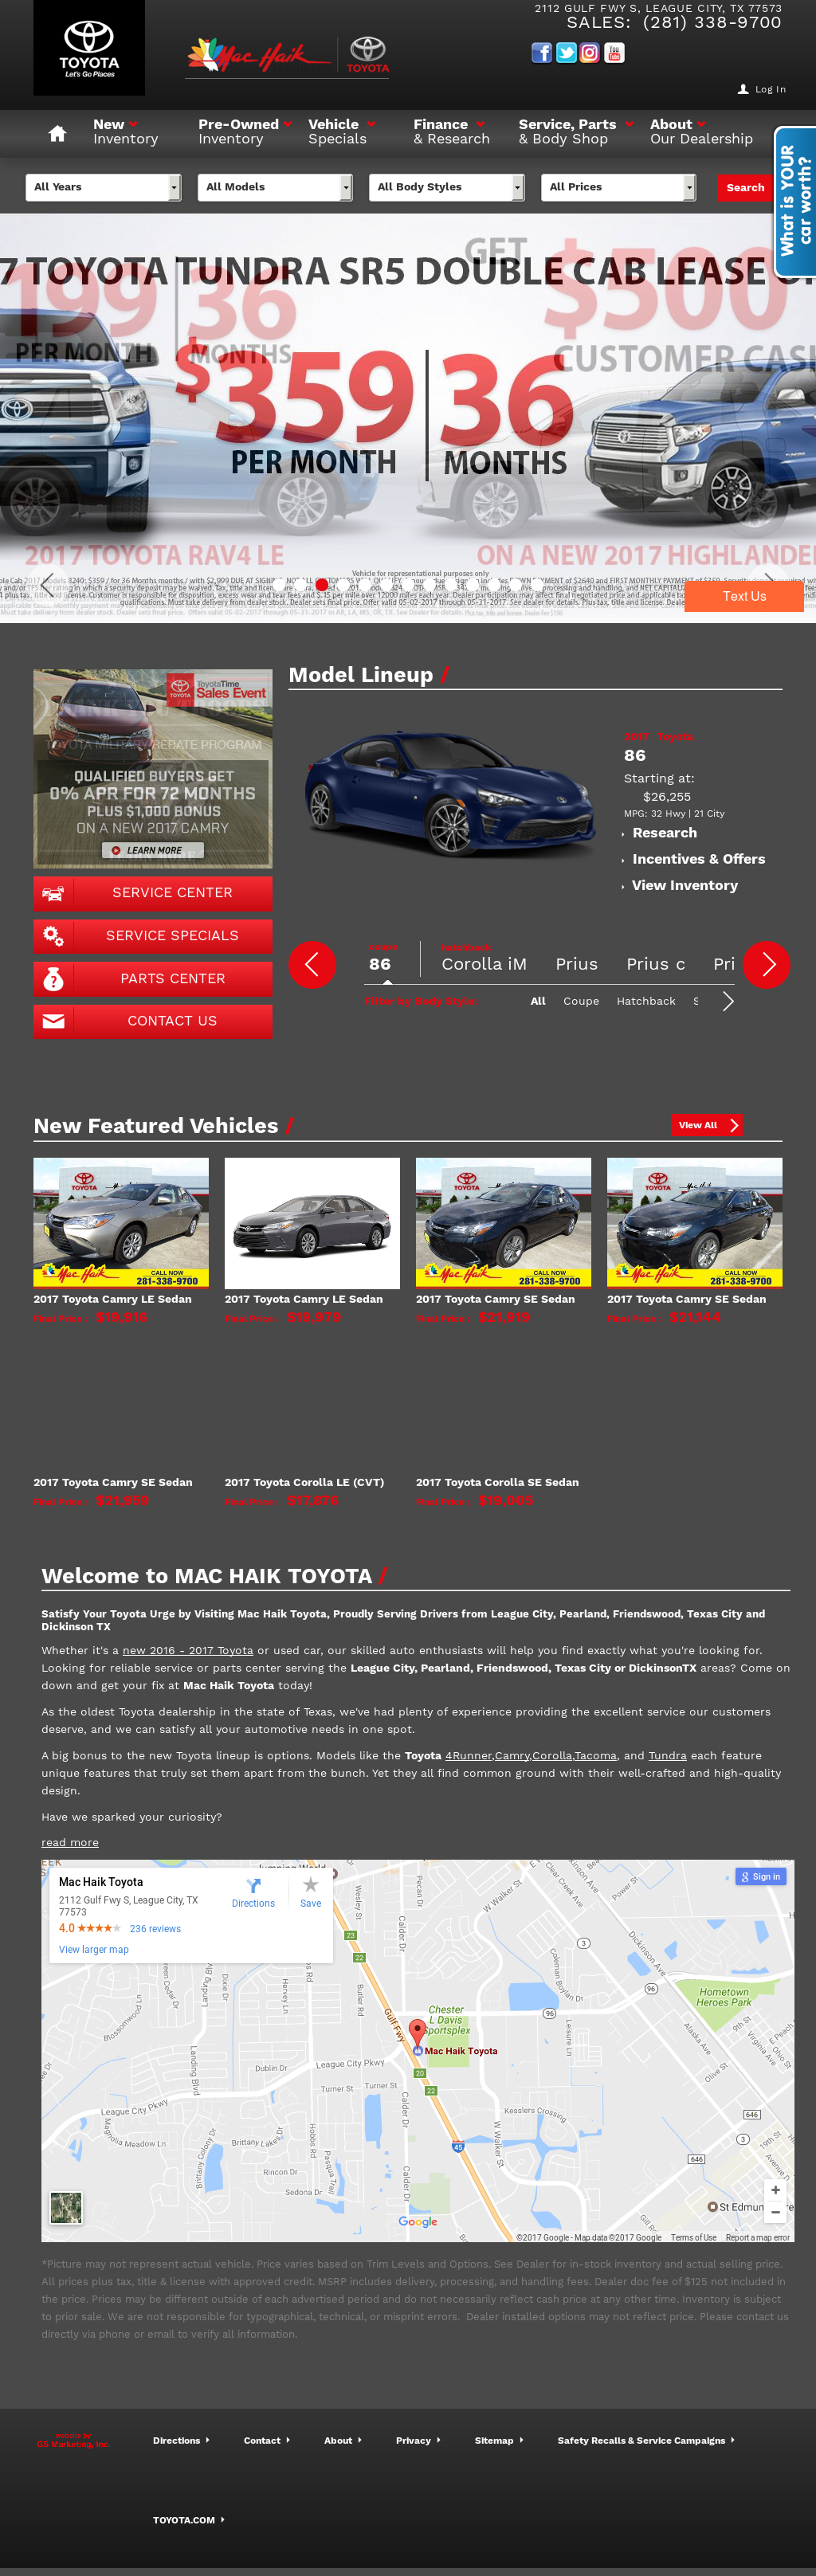 Star Toyota Website History